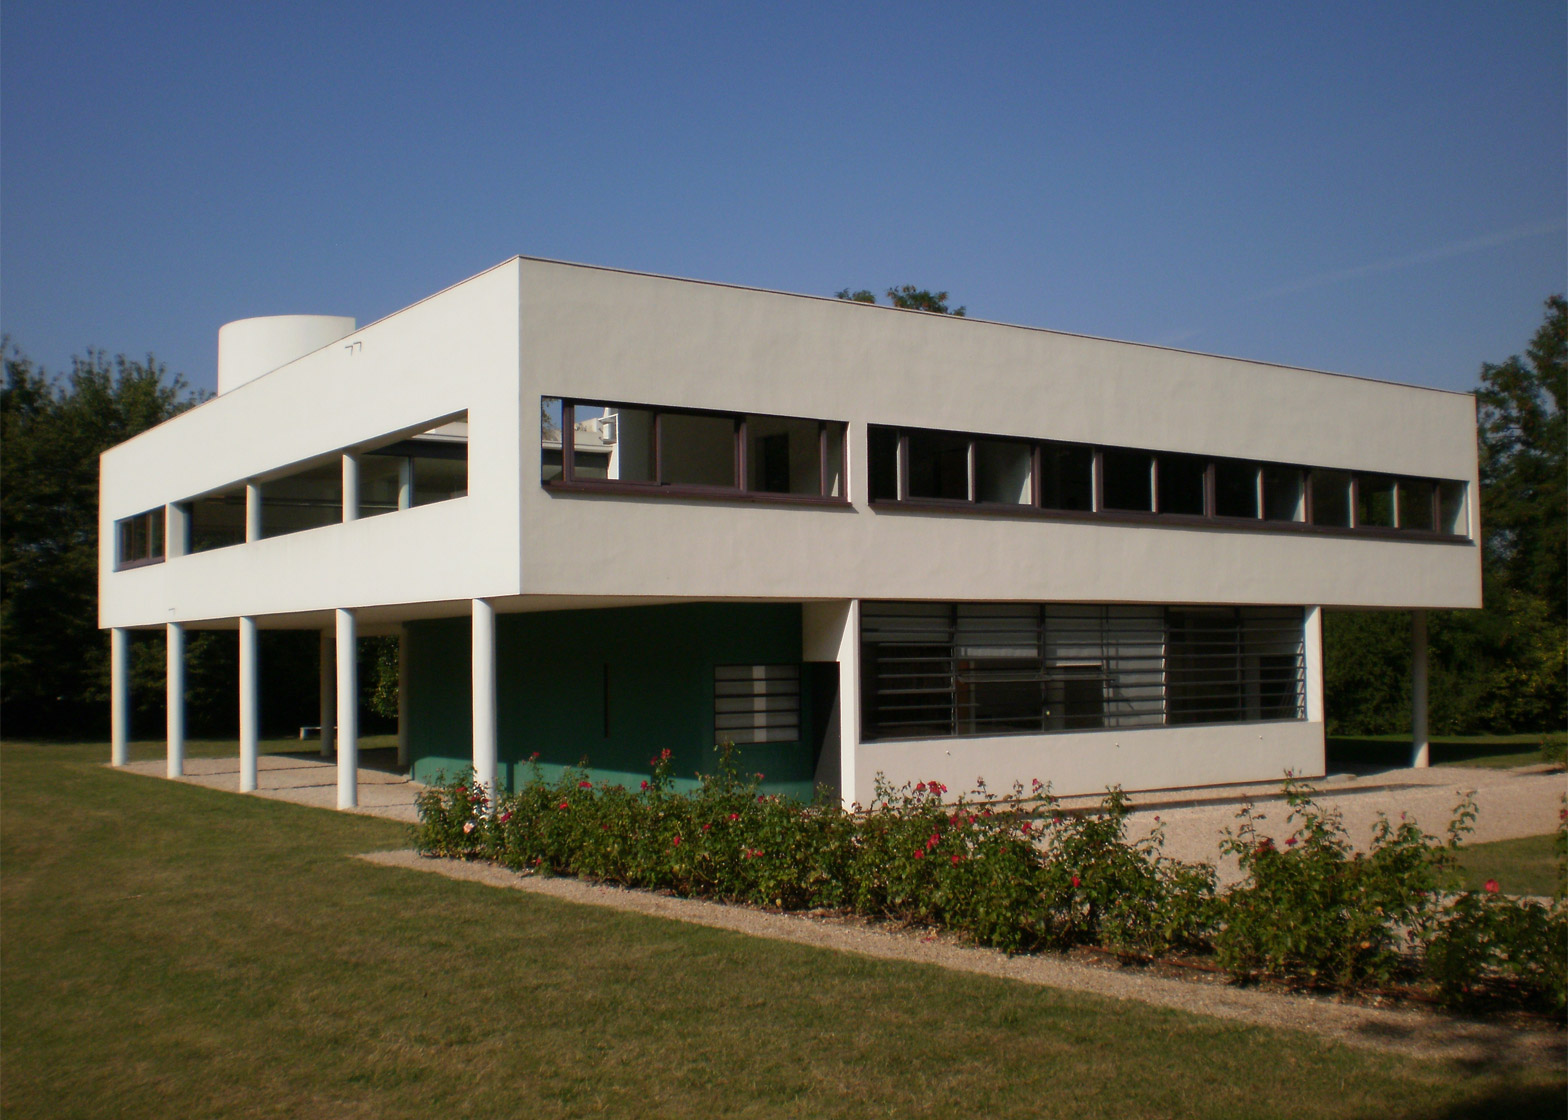 Le Corbusier\'s Villa Savoye encapsulates the Modernist style